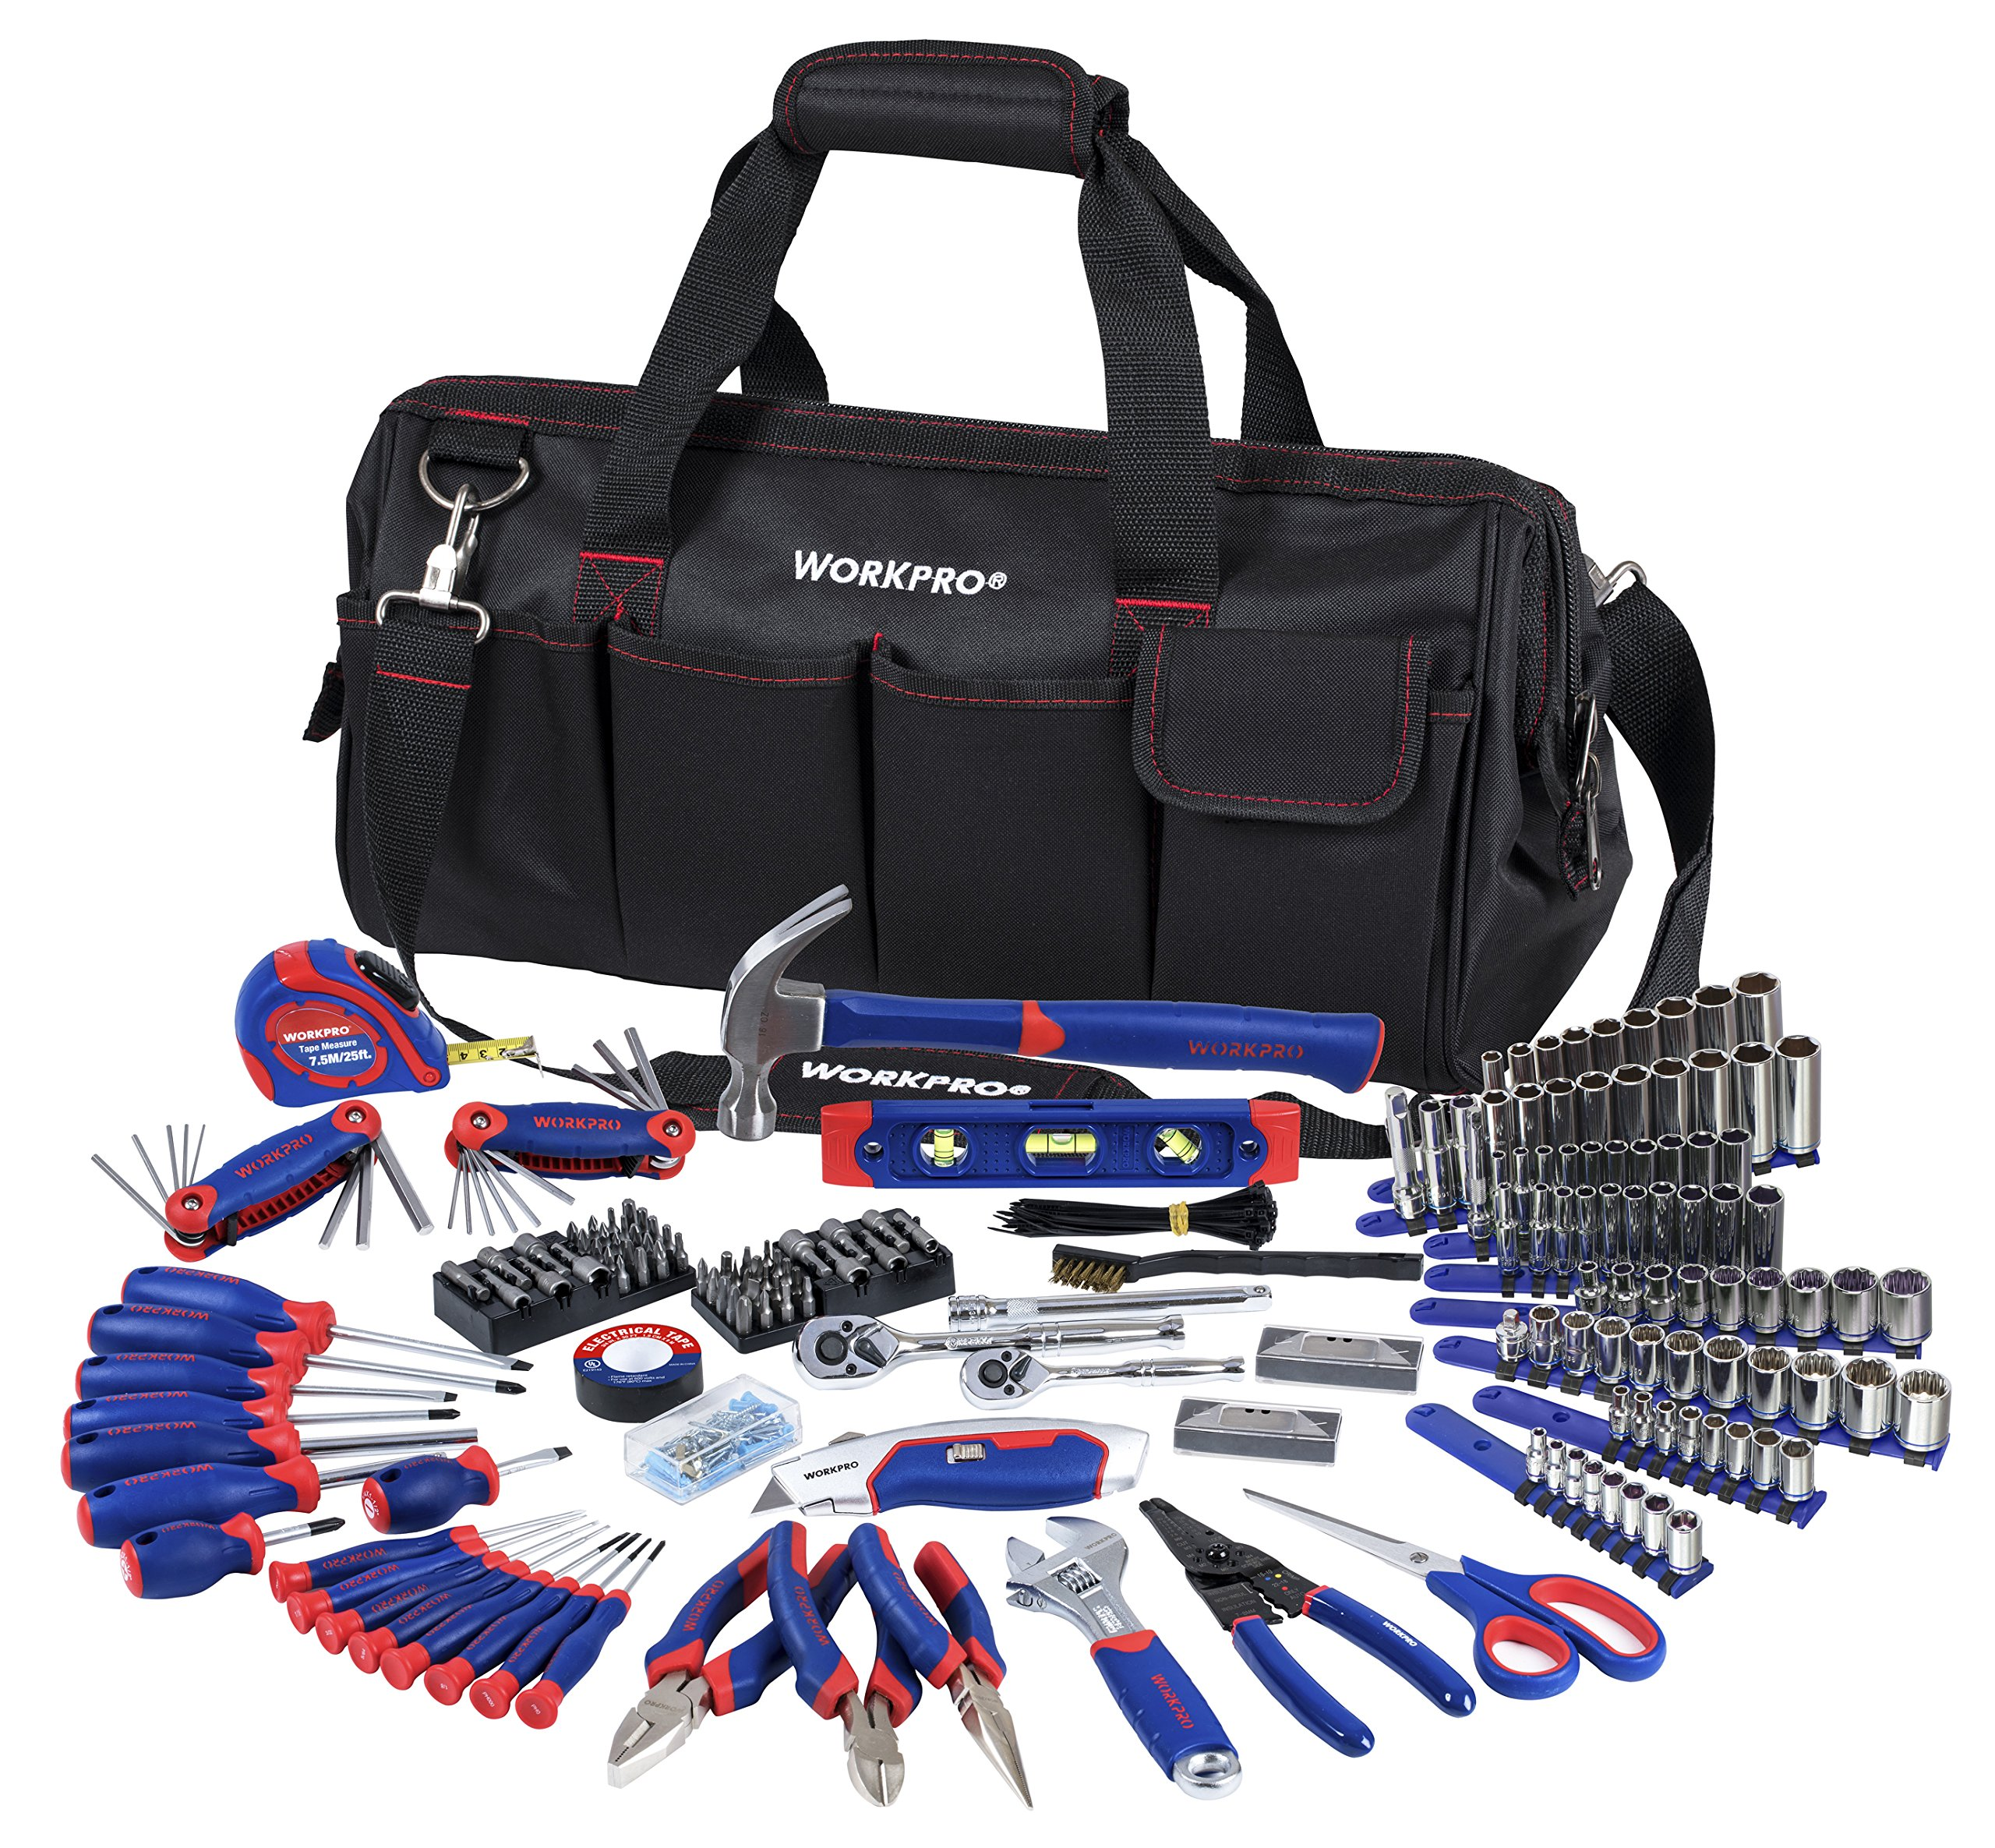 WORKPRO W009037A Home Repair Hand Tool Kit Basic Household Tool Set with Carrying Bag, 322-Piece